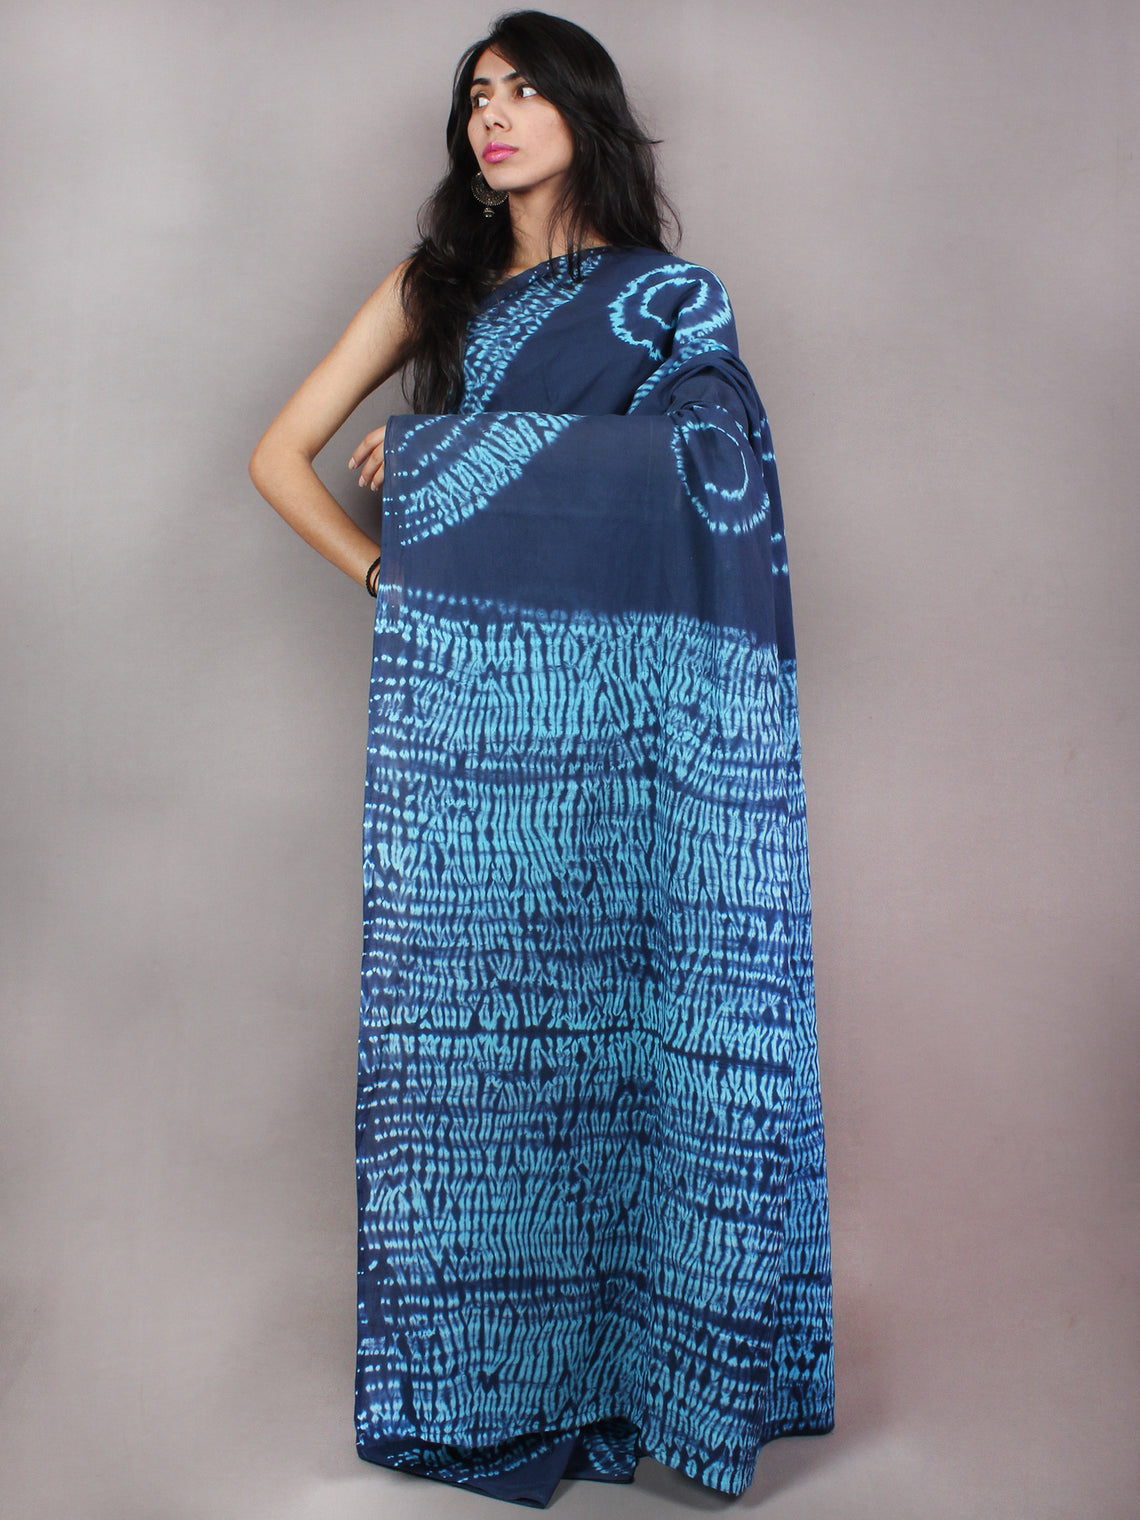 Indigo Sky Blue Shibori Dyed Cotton Mul Saree  - S03170760